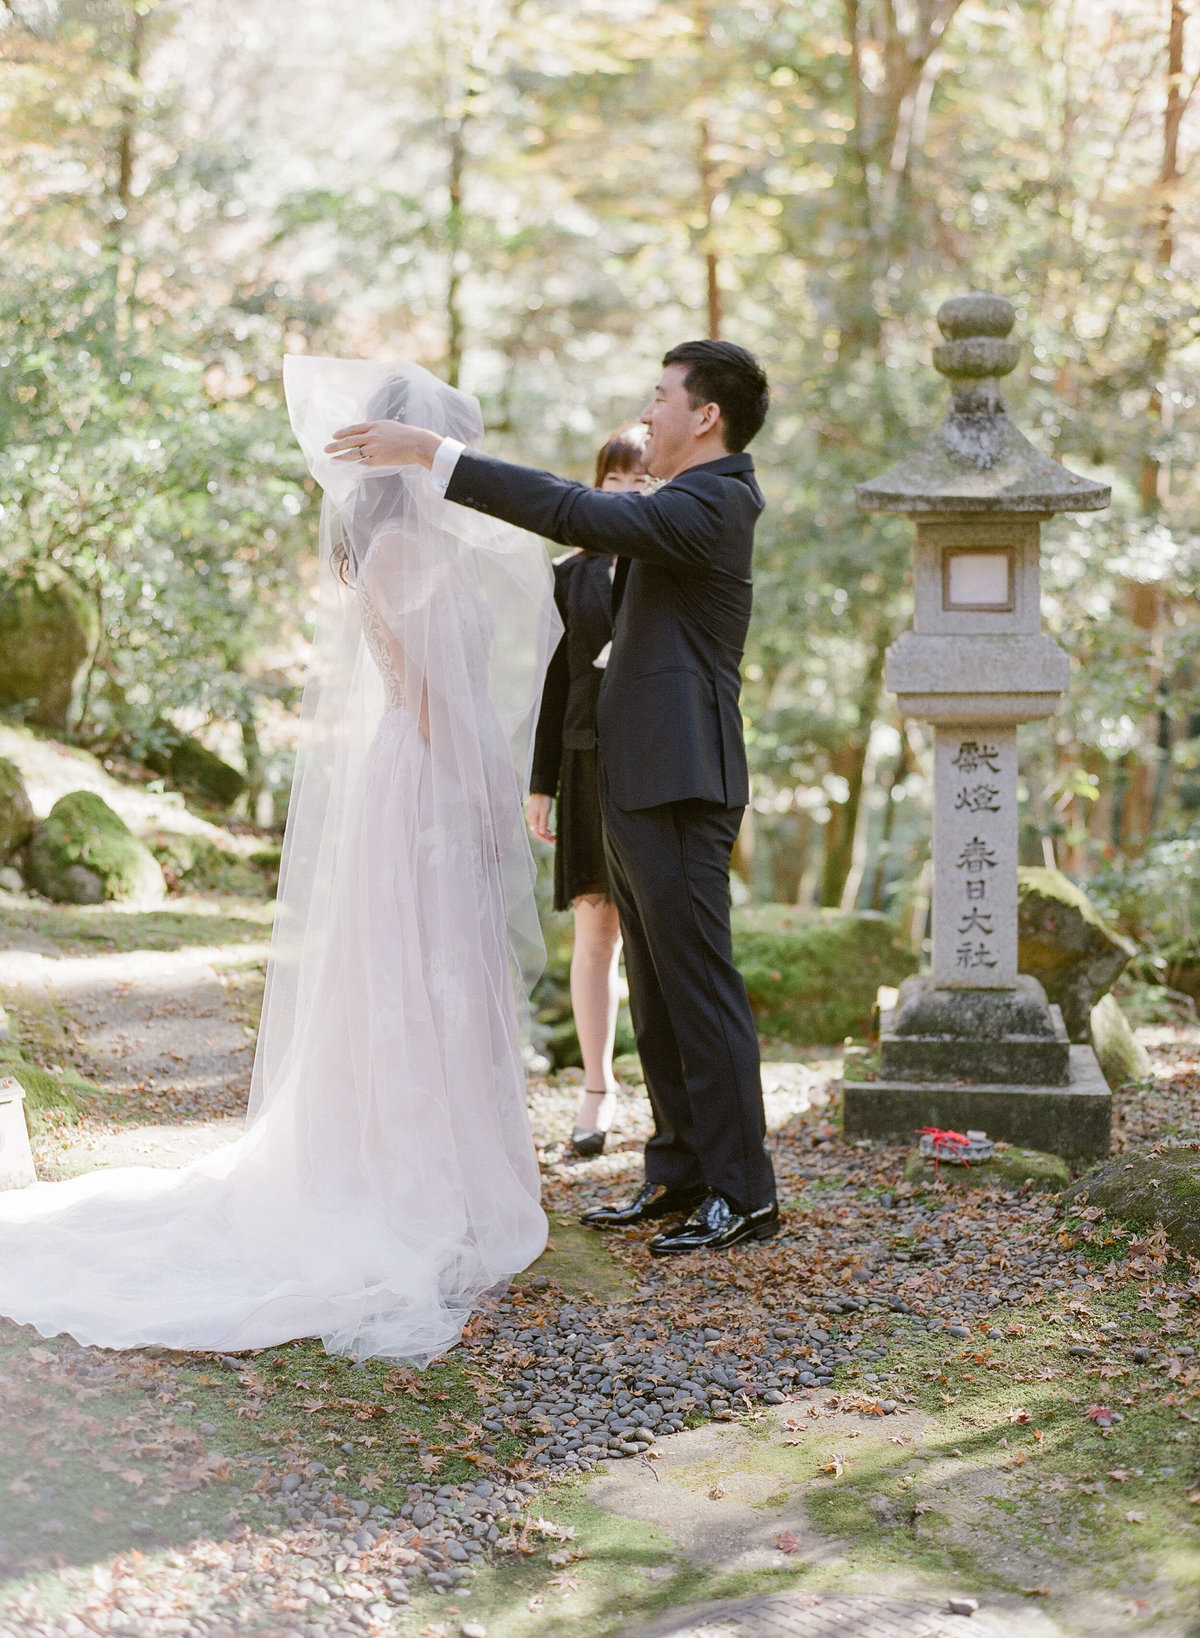 11-KTMerry-weddings-elopement-japan